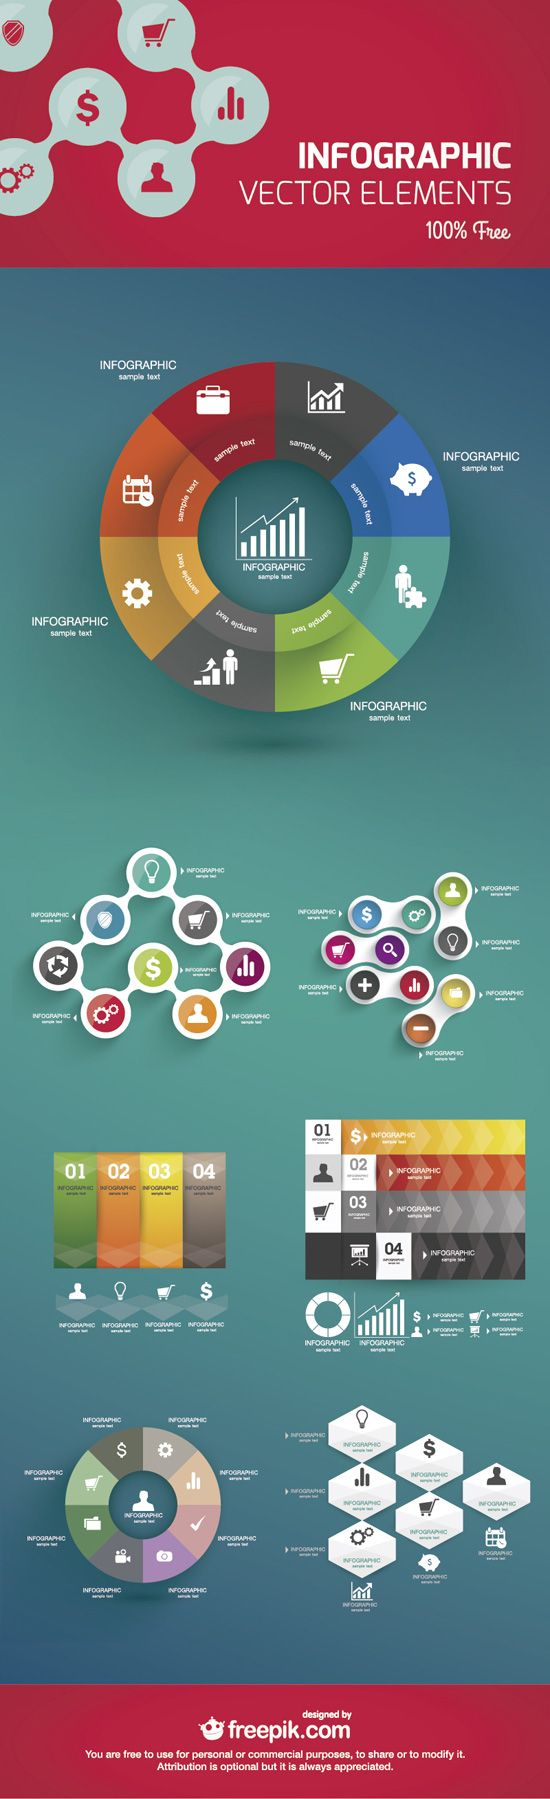 Free Vector Infographic Design Template (AI) by freepik.com at sixrevisions.com